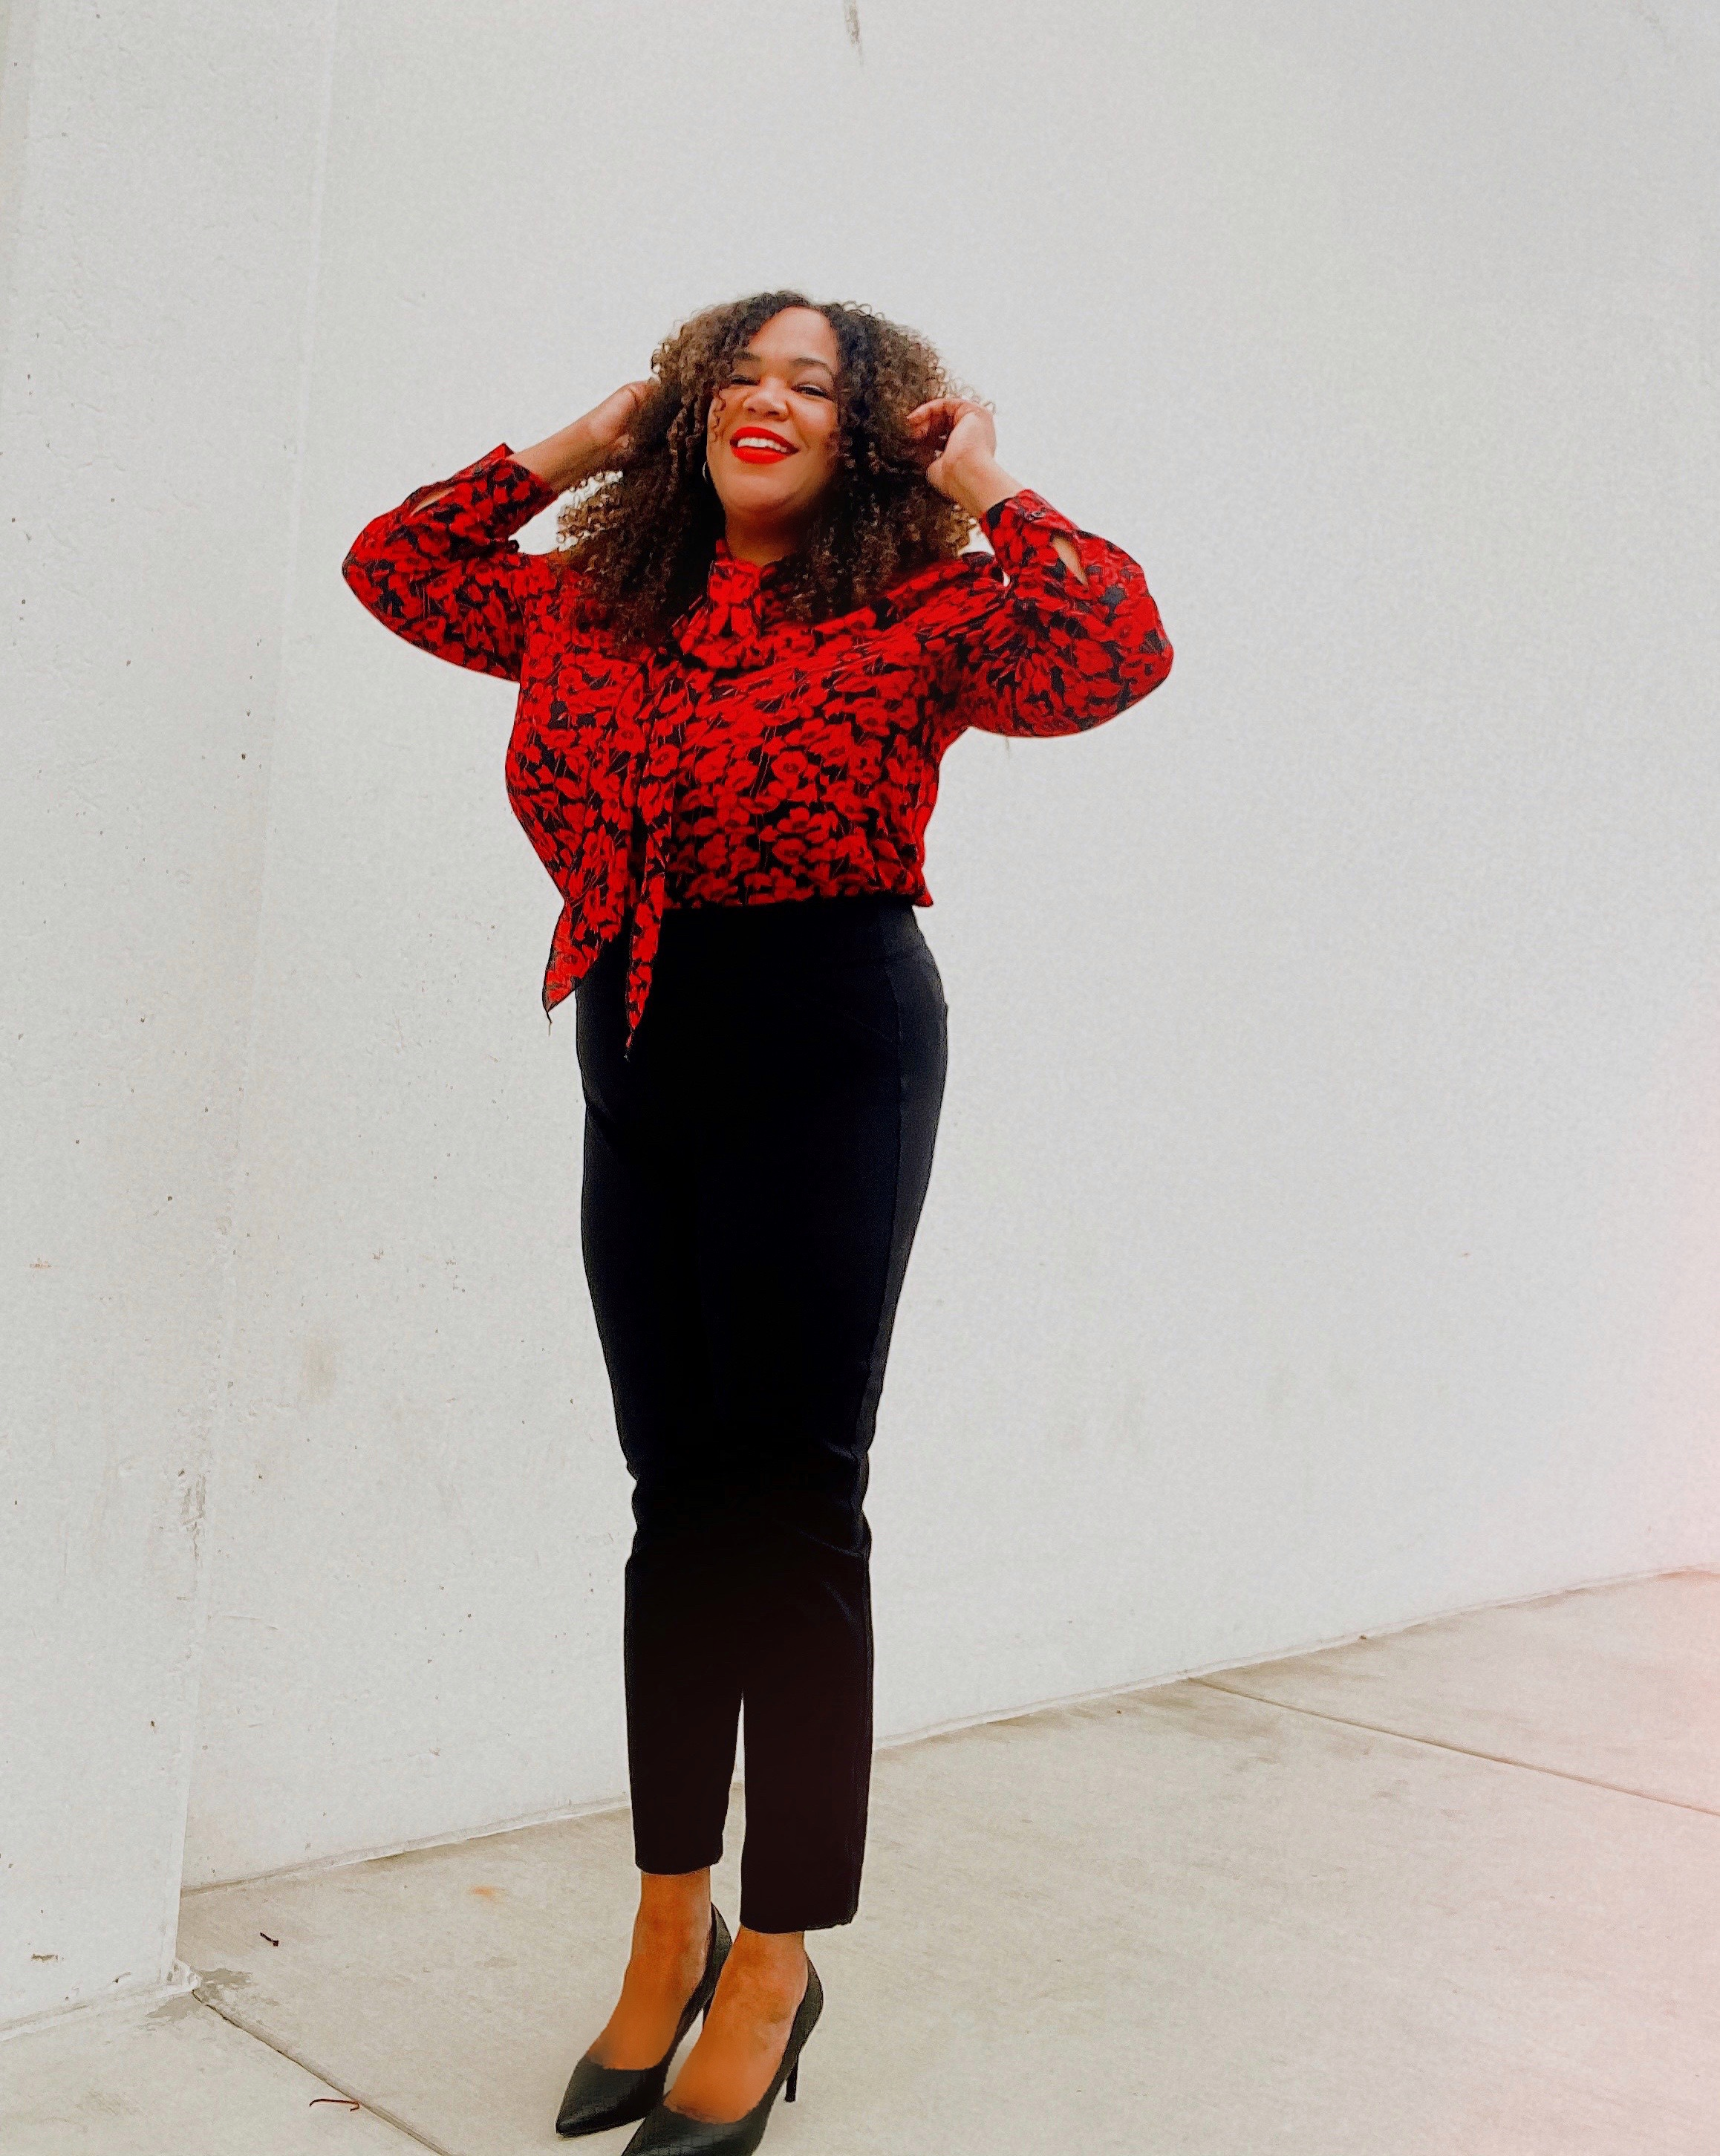 Black woman with black pants